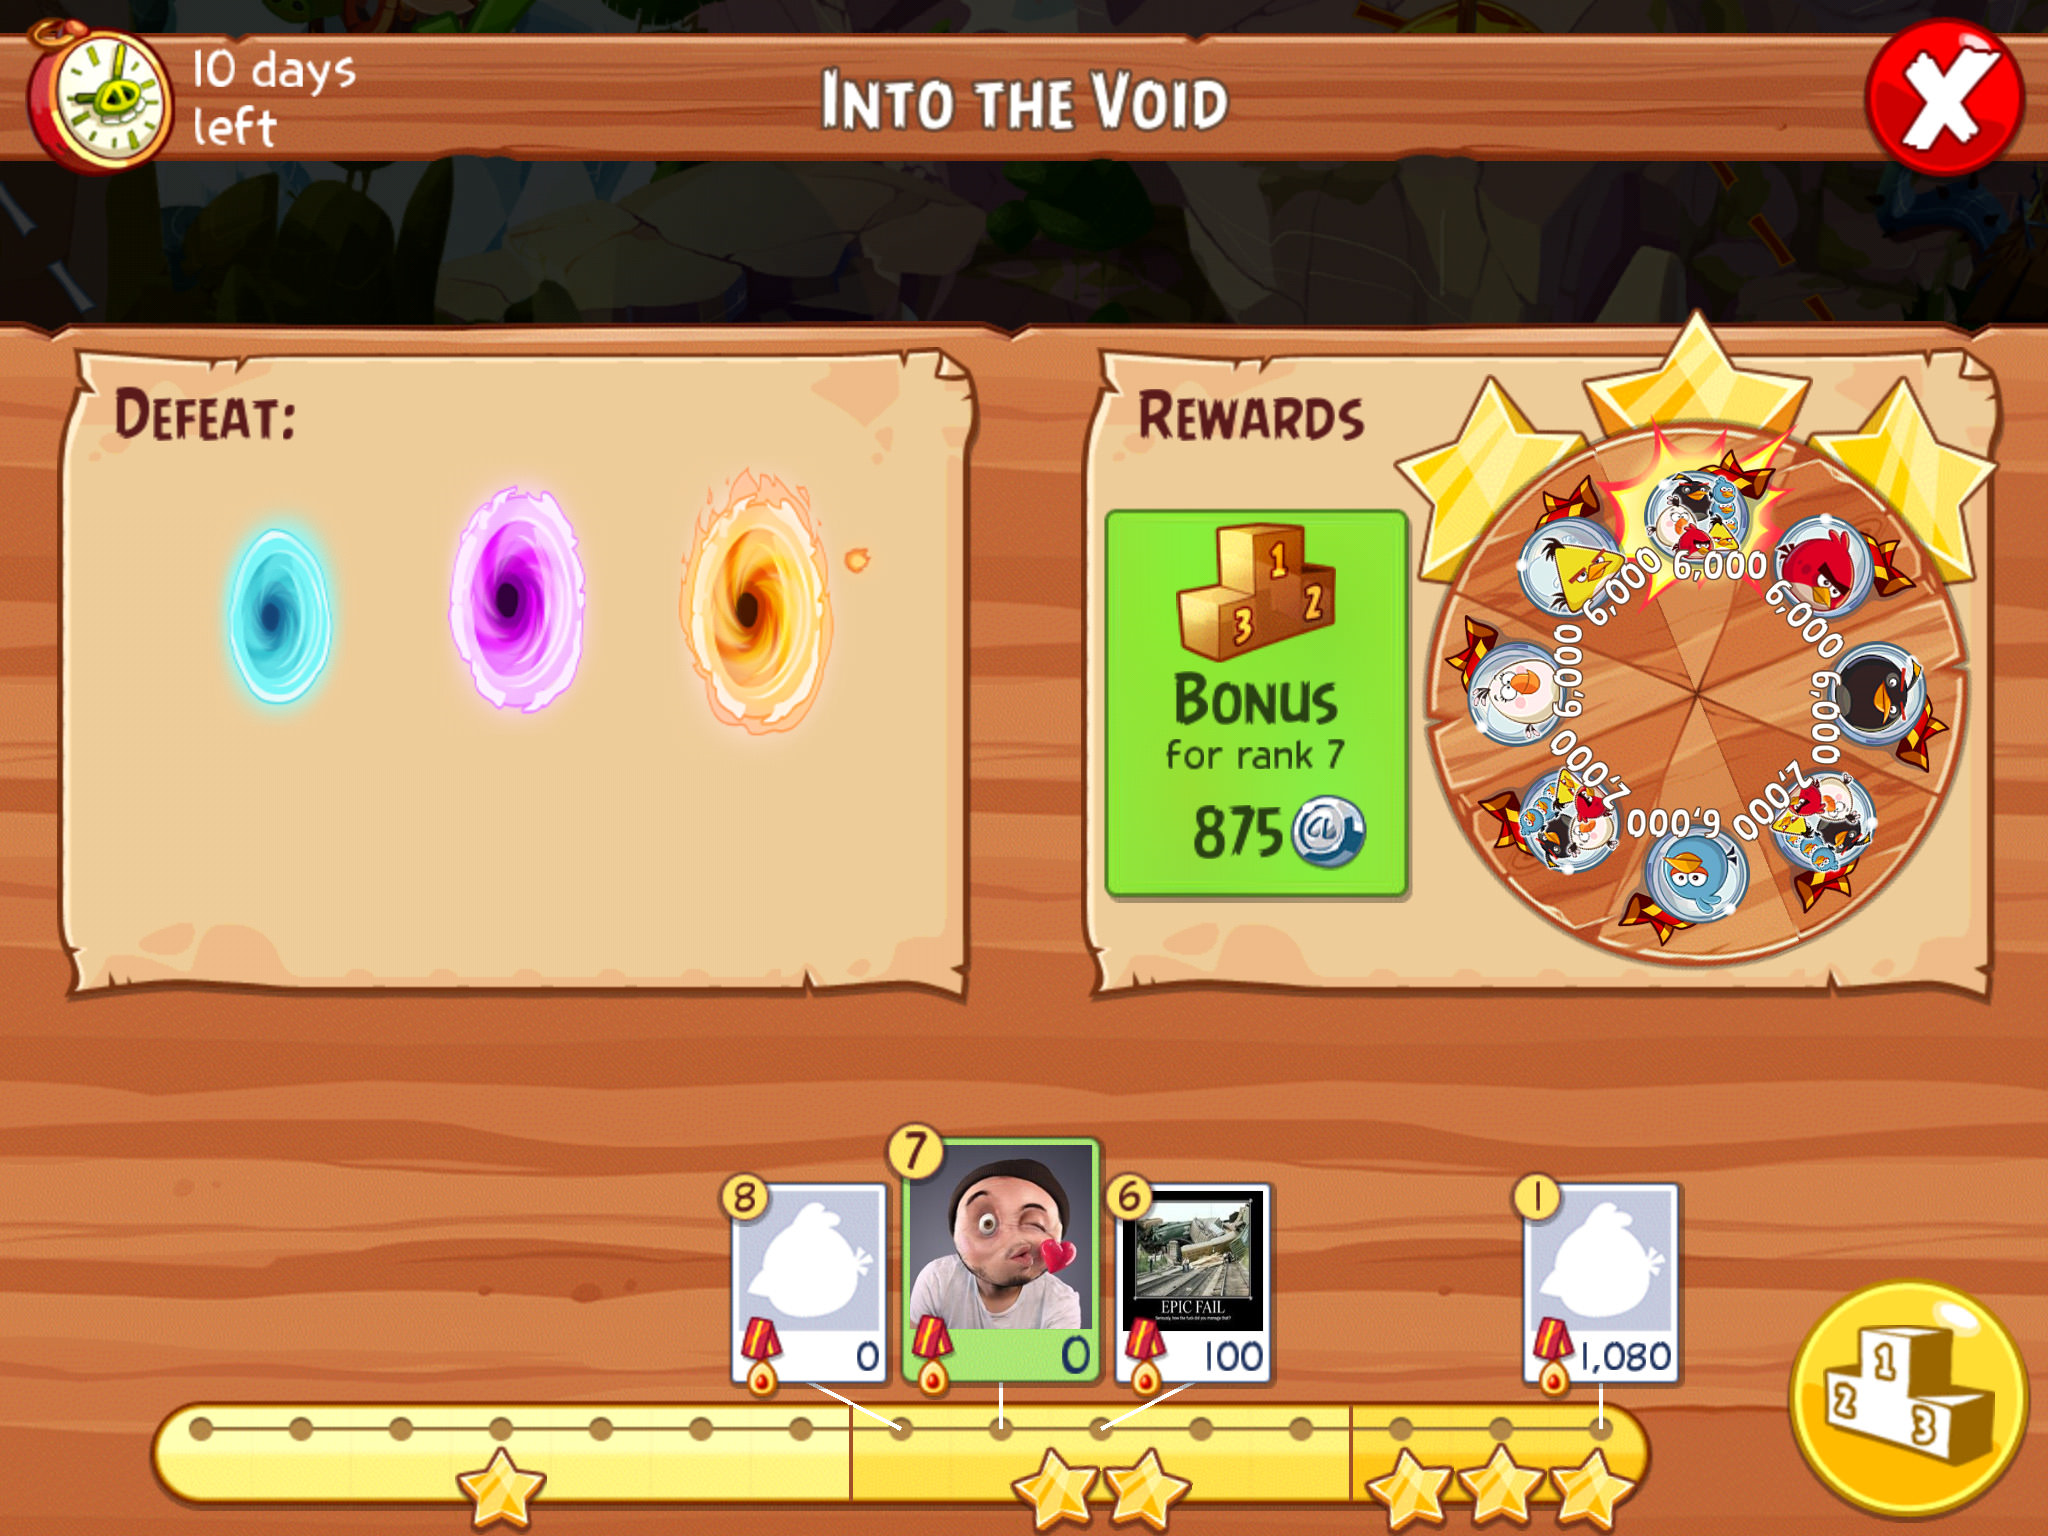 Angry Birds and Puzzle and Dragons partnership - Progress